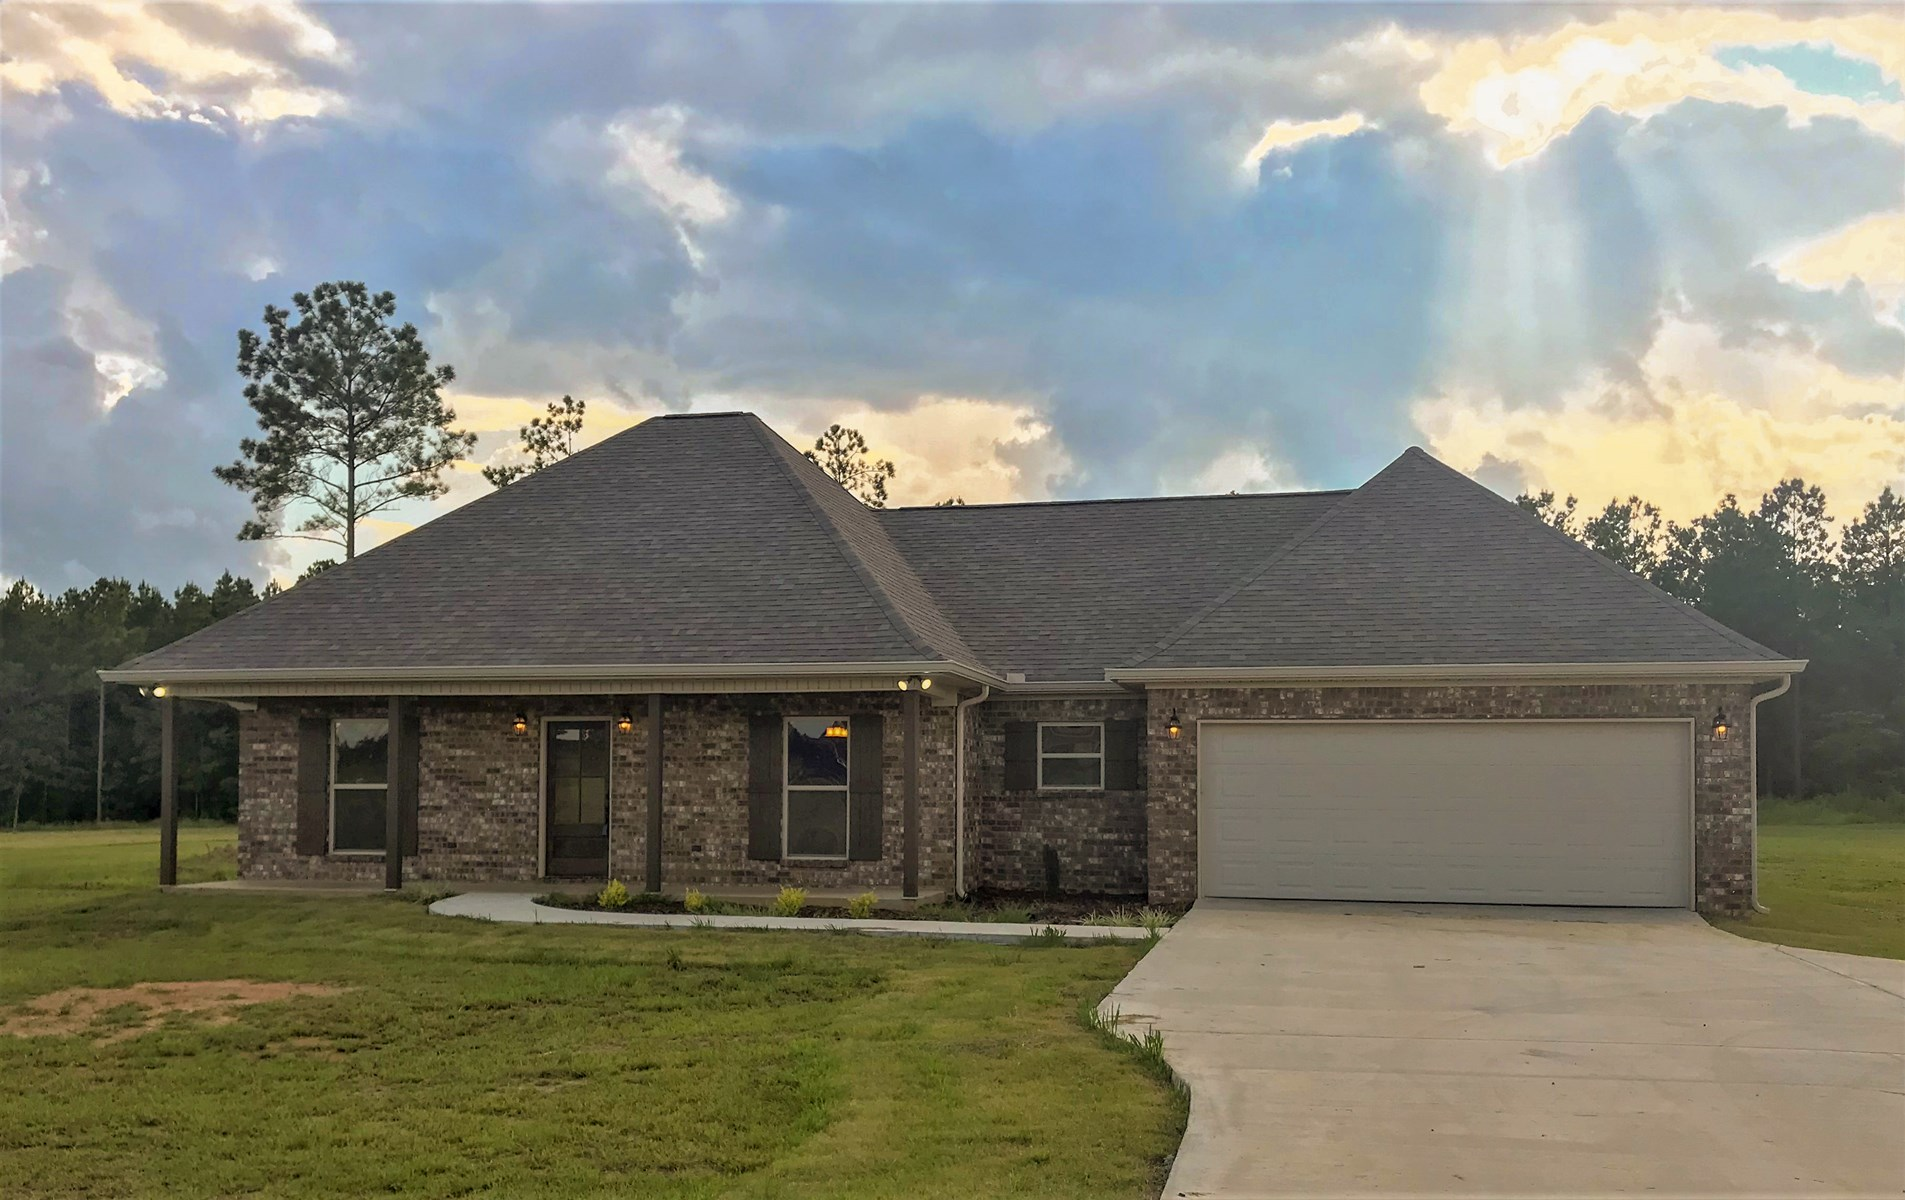 280 CARLY LN, STARKVILLE, MS 39759: NEW CONSTRUCTION